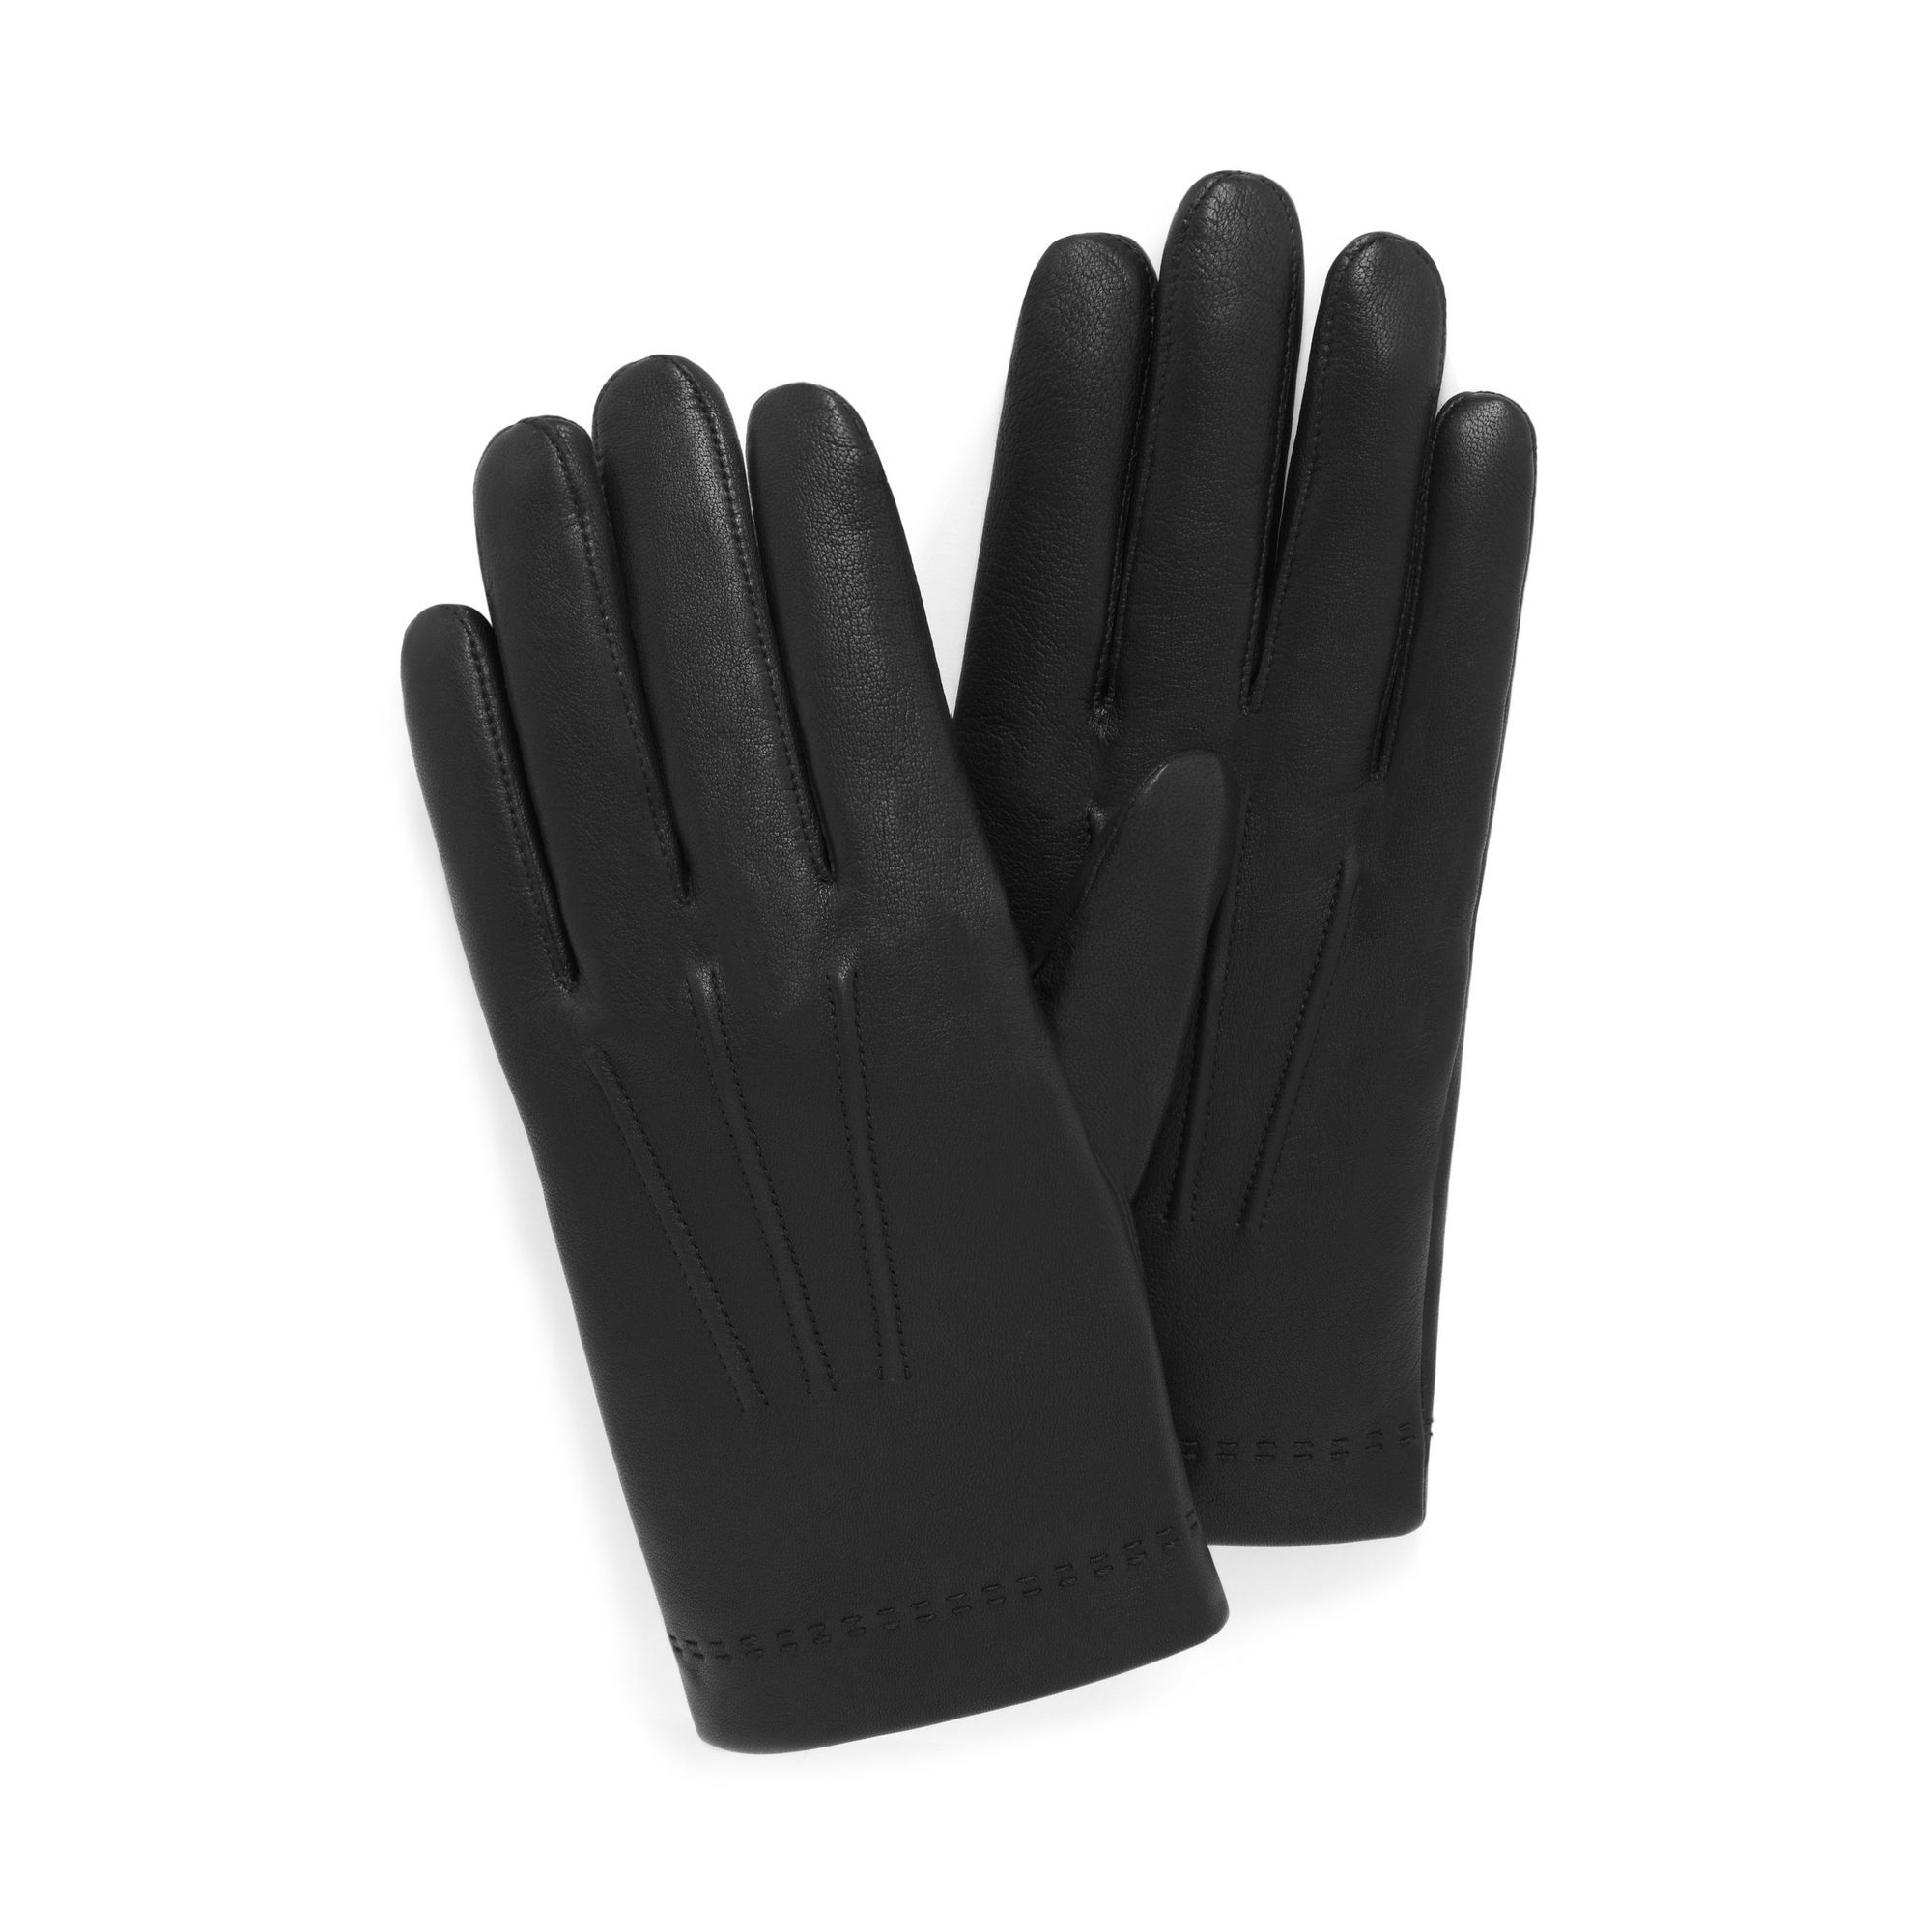 aaf91d53b613d Shop Men s Soft Glovesin Black on Mulberry.com. Soft and supple leather  gloves with